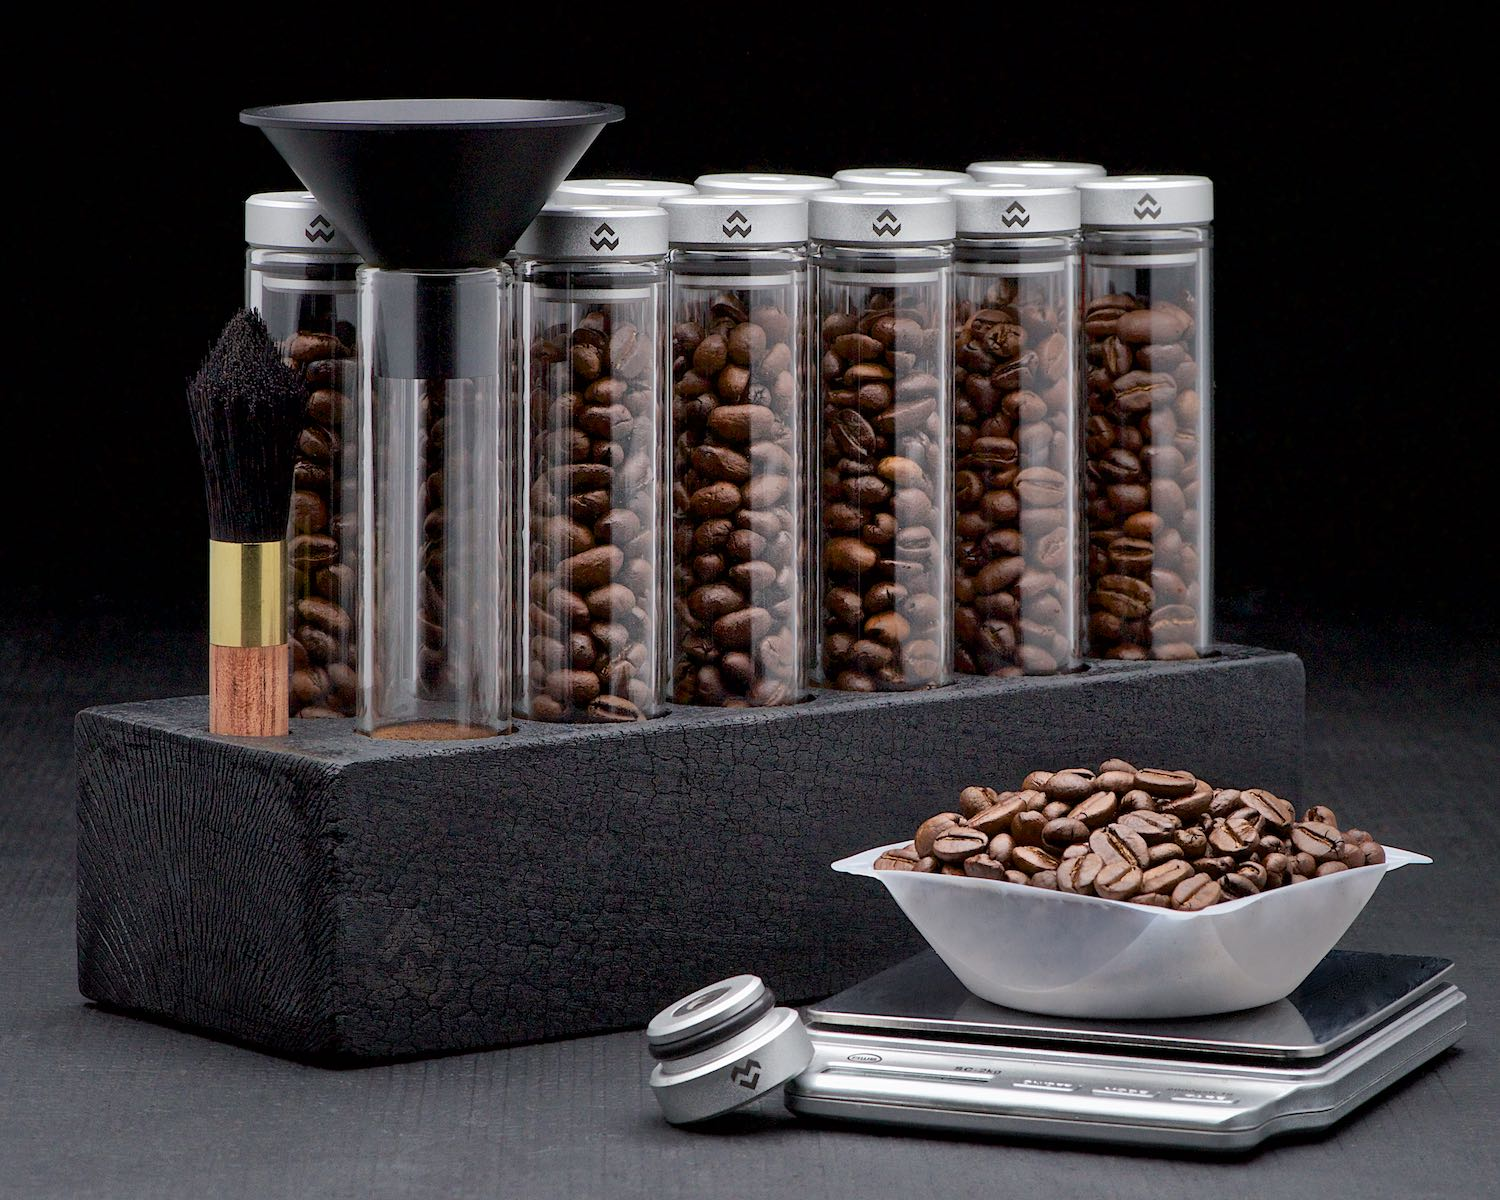 Espresso coffee beans single dose bean storage cellars on black background by Bret Doss Commercial Food & Product Photography  Seattle